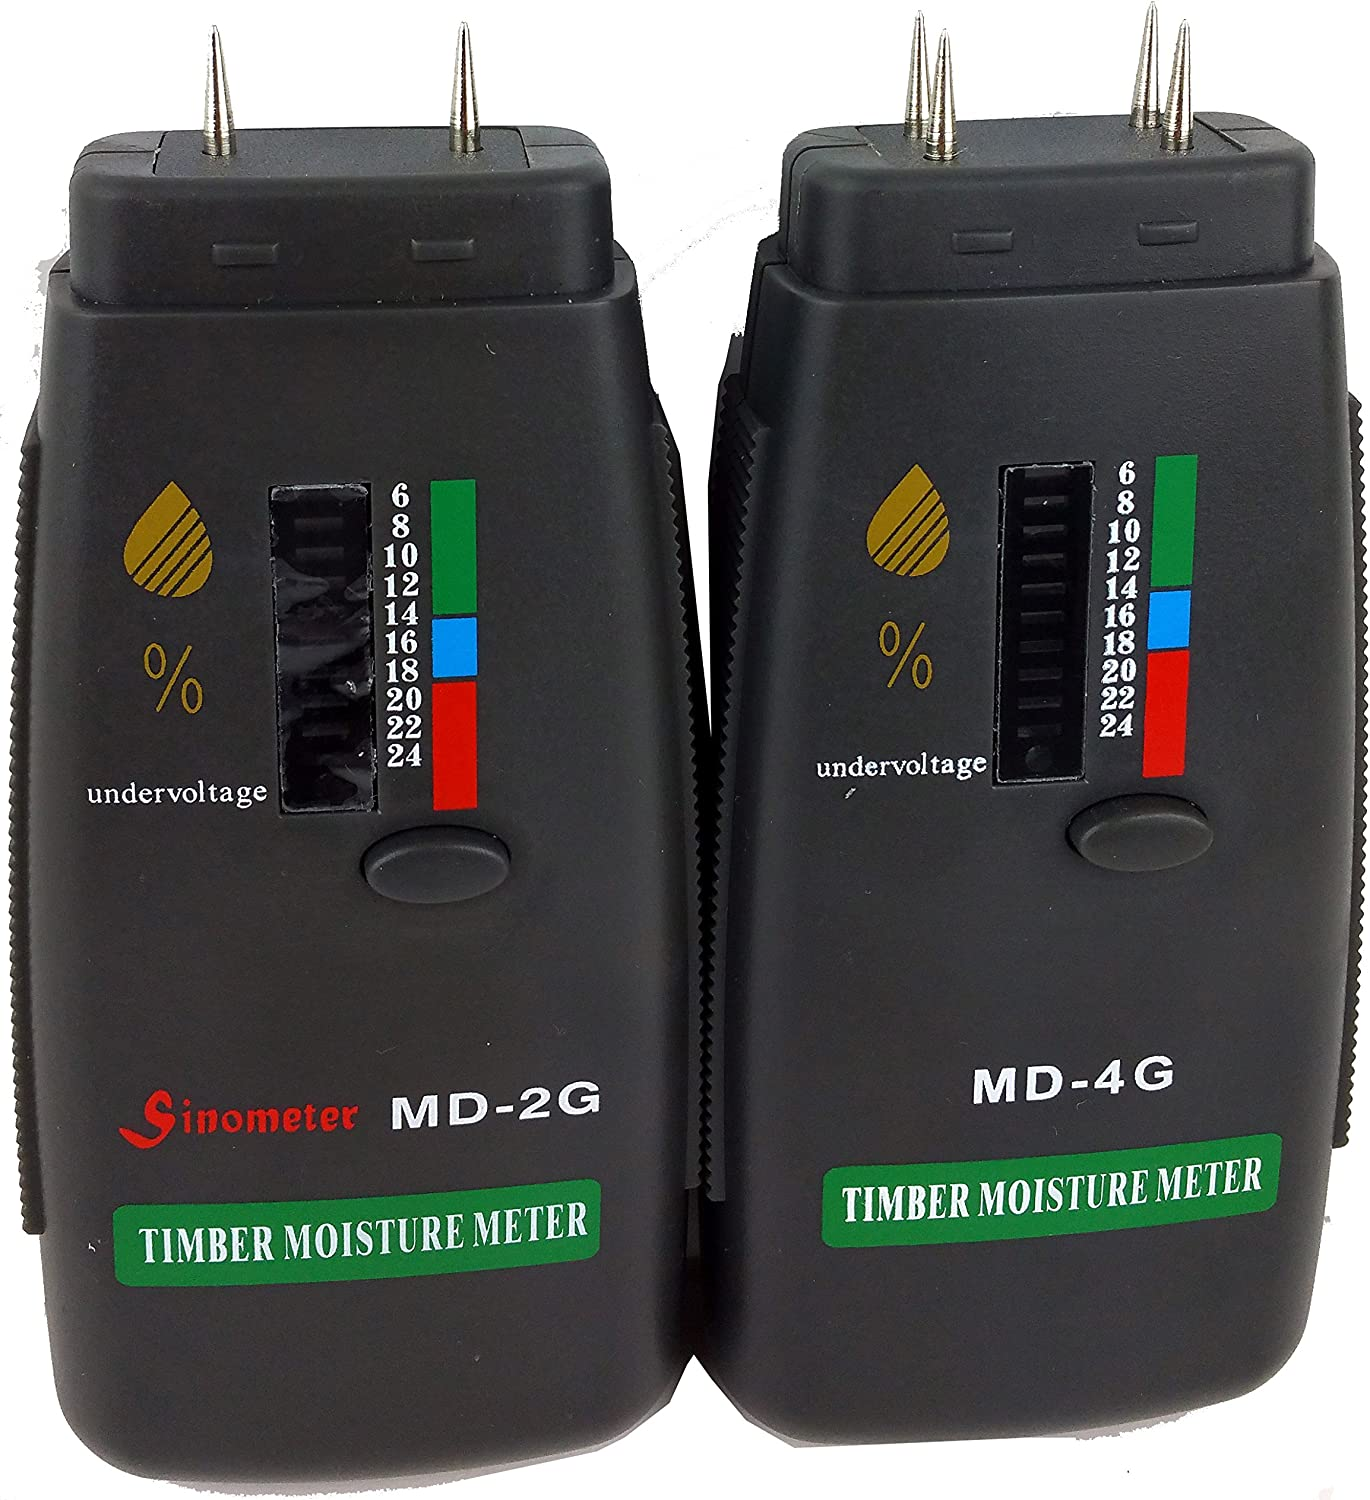 Sinometer MD-2G Wood Moisture Meter To Measure the Percentage of Water in Given Substance Wood, Sheetrock, Carpets and More Range 6/% - 24/% RH